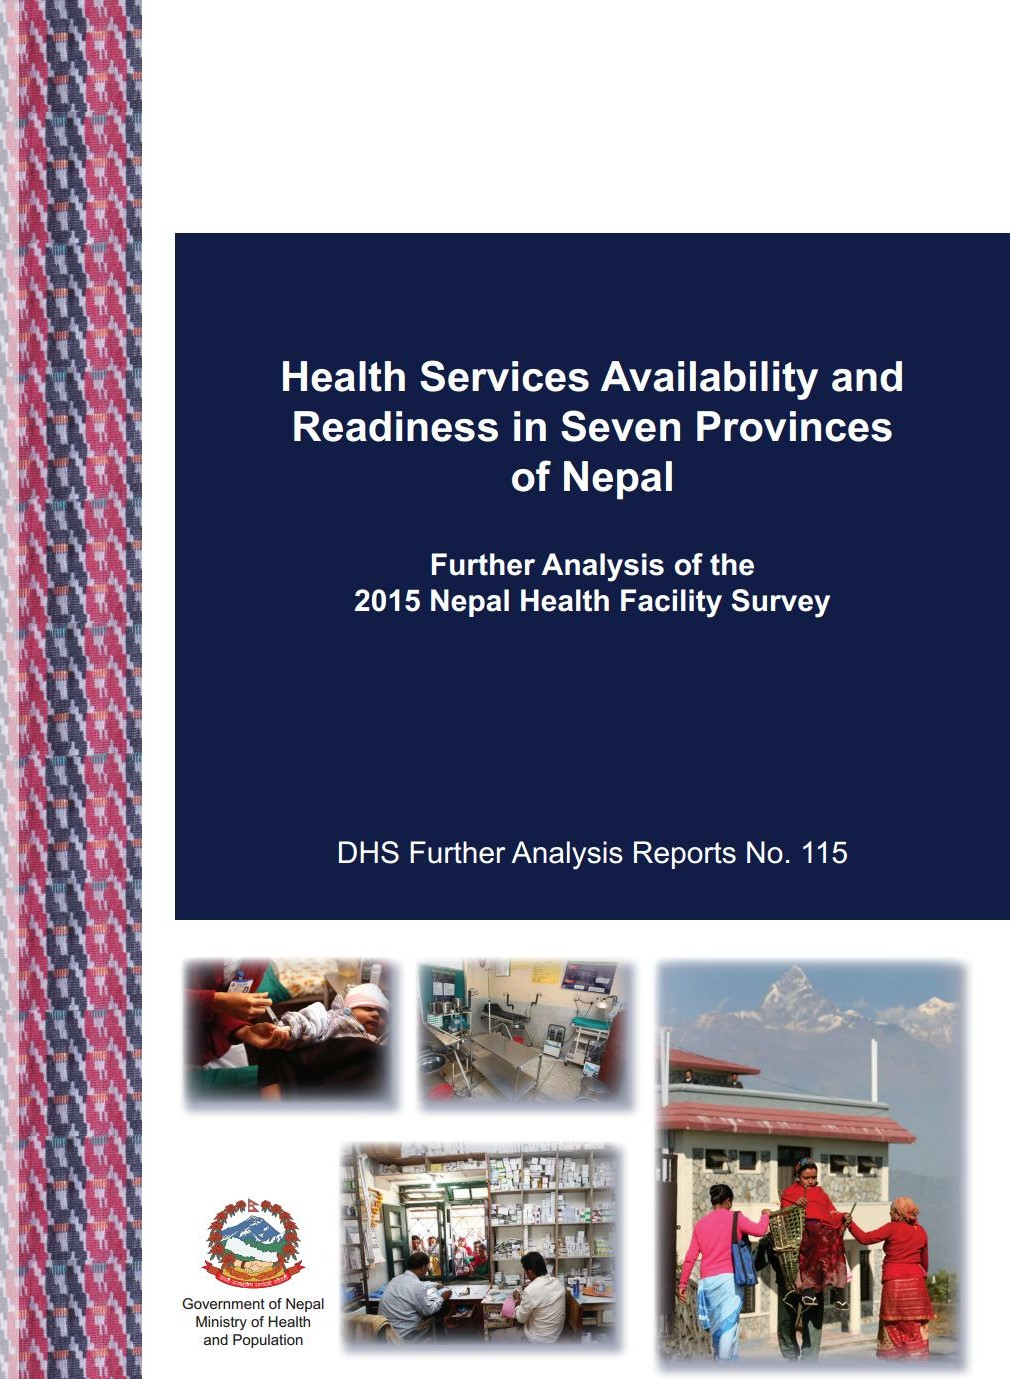 Further Analysis of 2015 Nepal Health Facility Survey